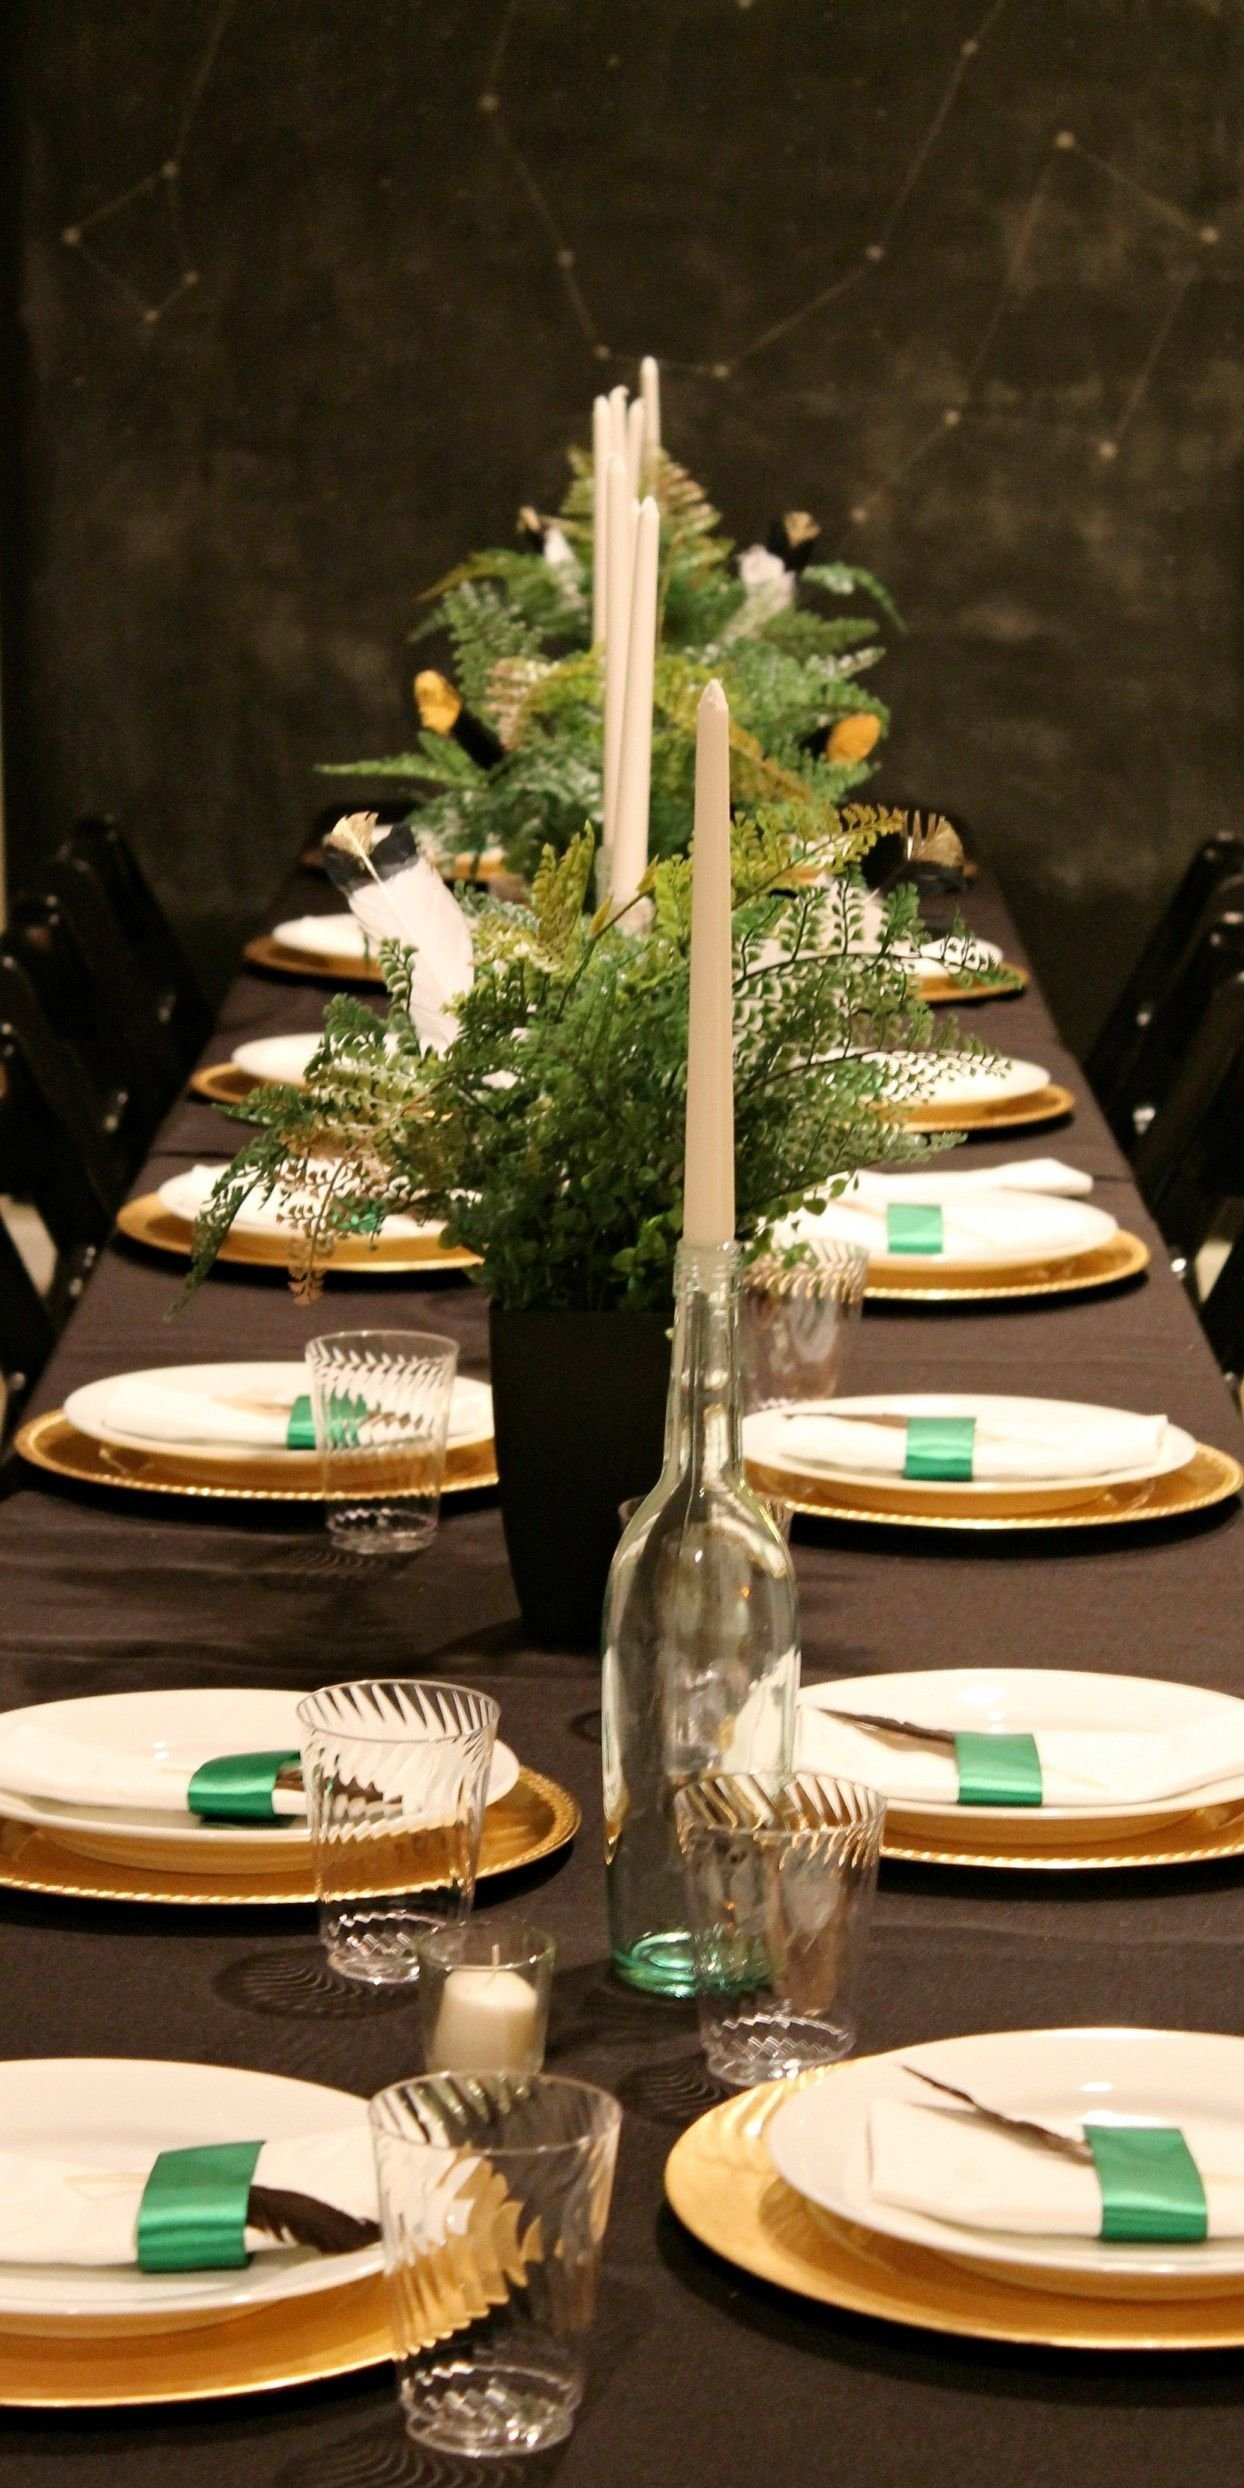 10 Fashionable Centerpiece Ideas For Dinner Party holiday dinner table ideas christmas decoration excerpt how to 2020